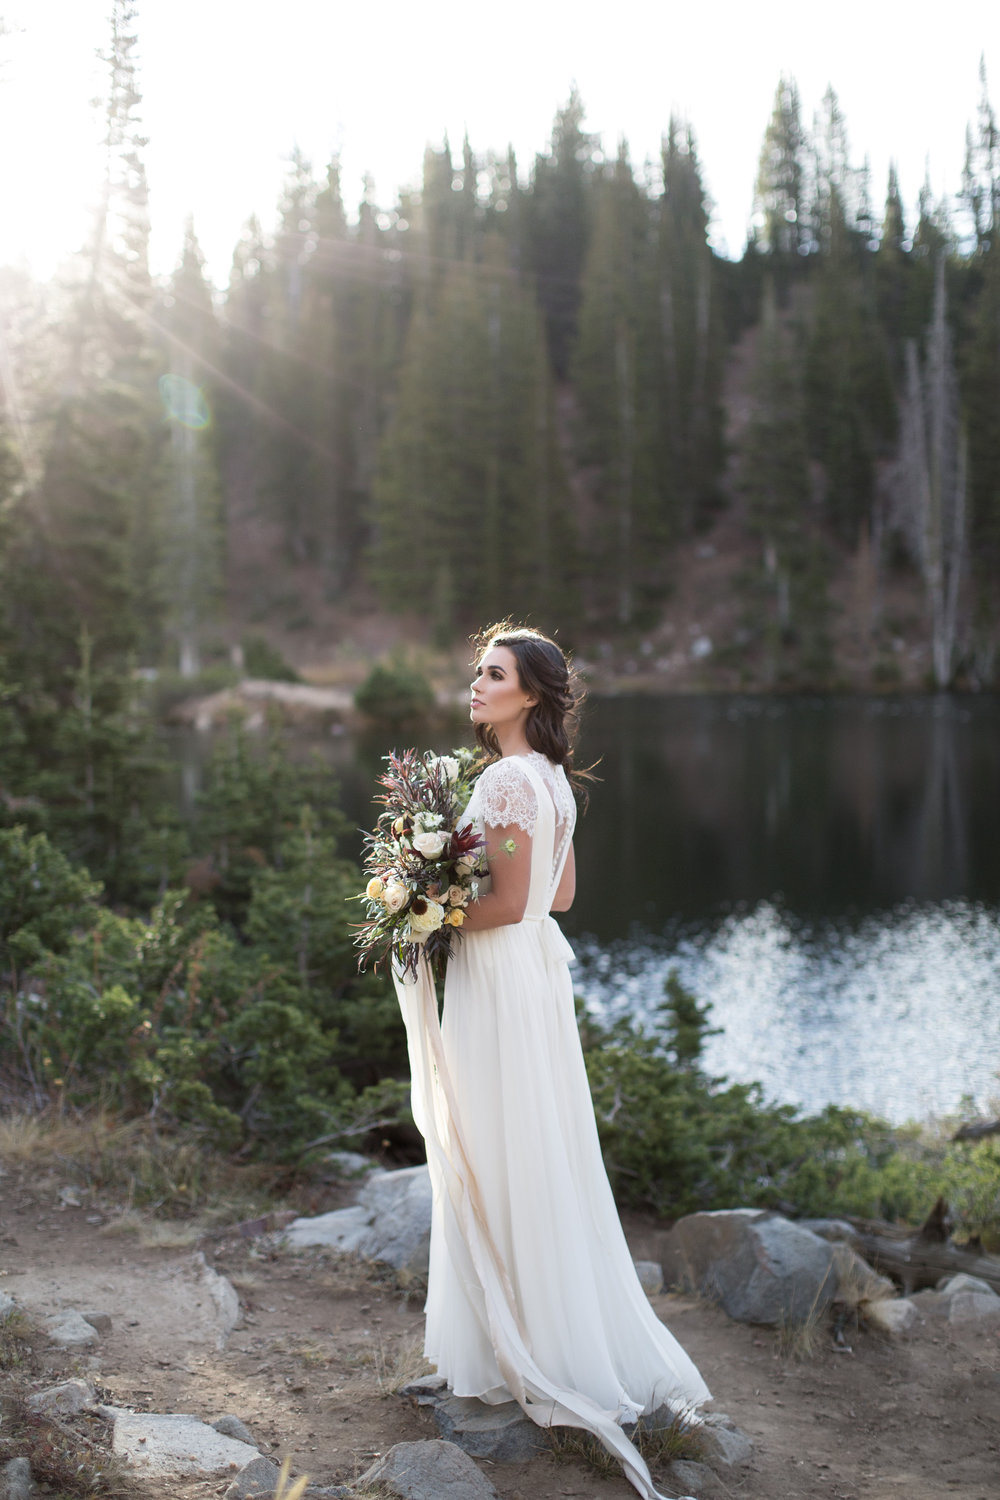 UtahValleyBrideShootTR2016 (93 of 110).jpg